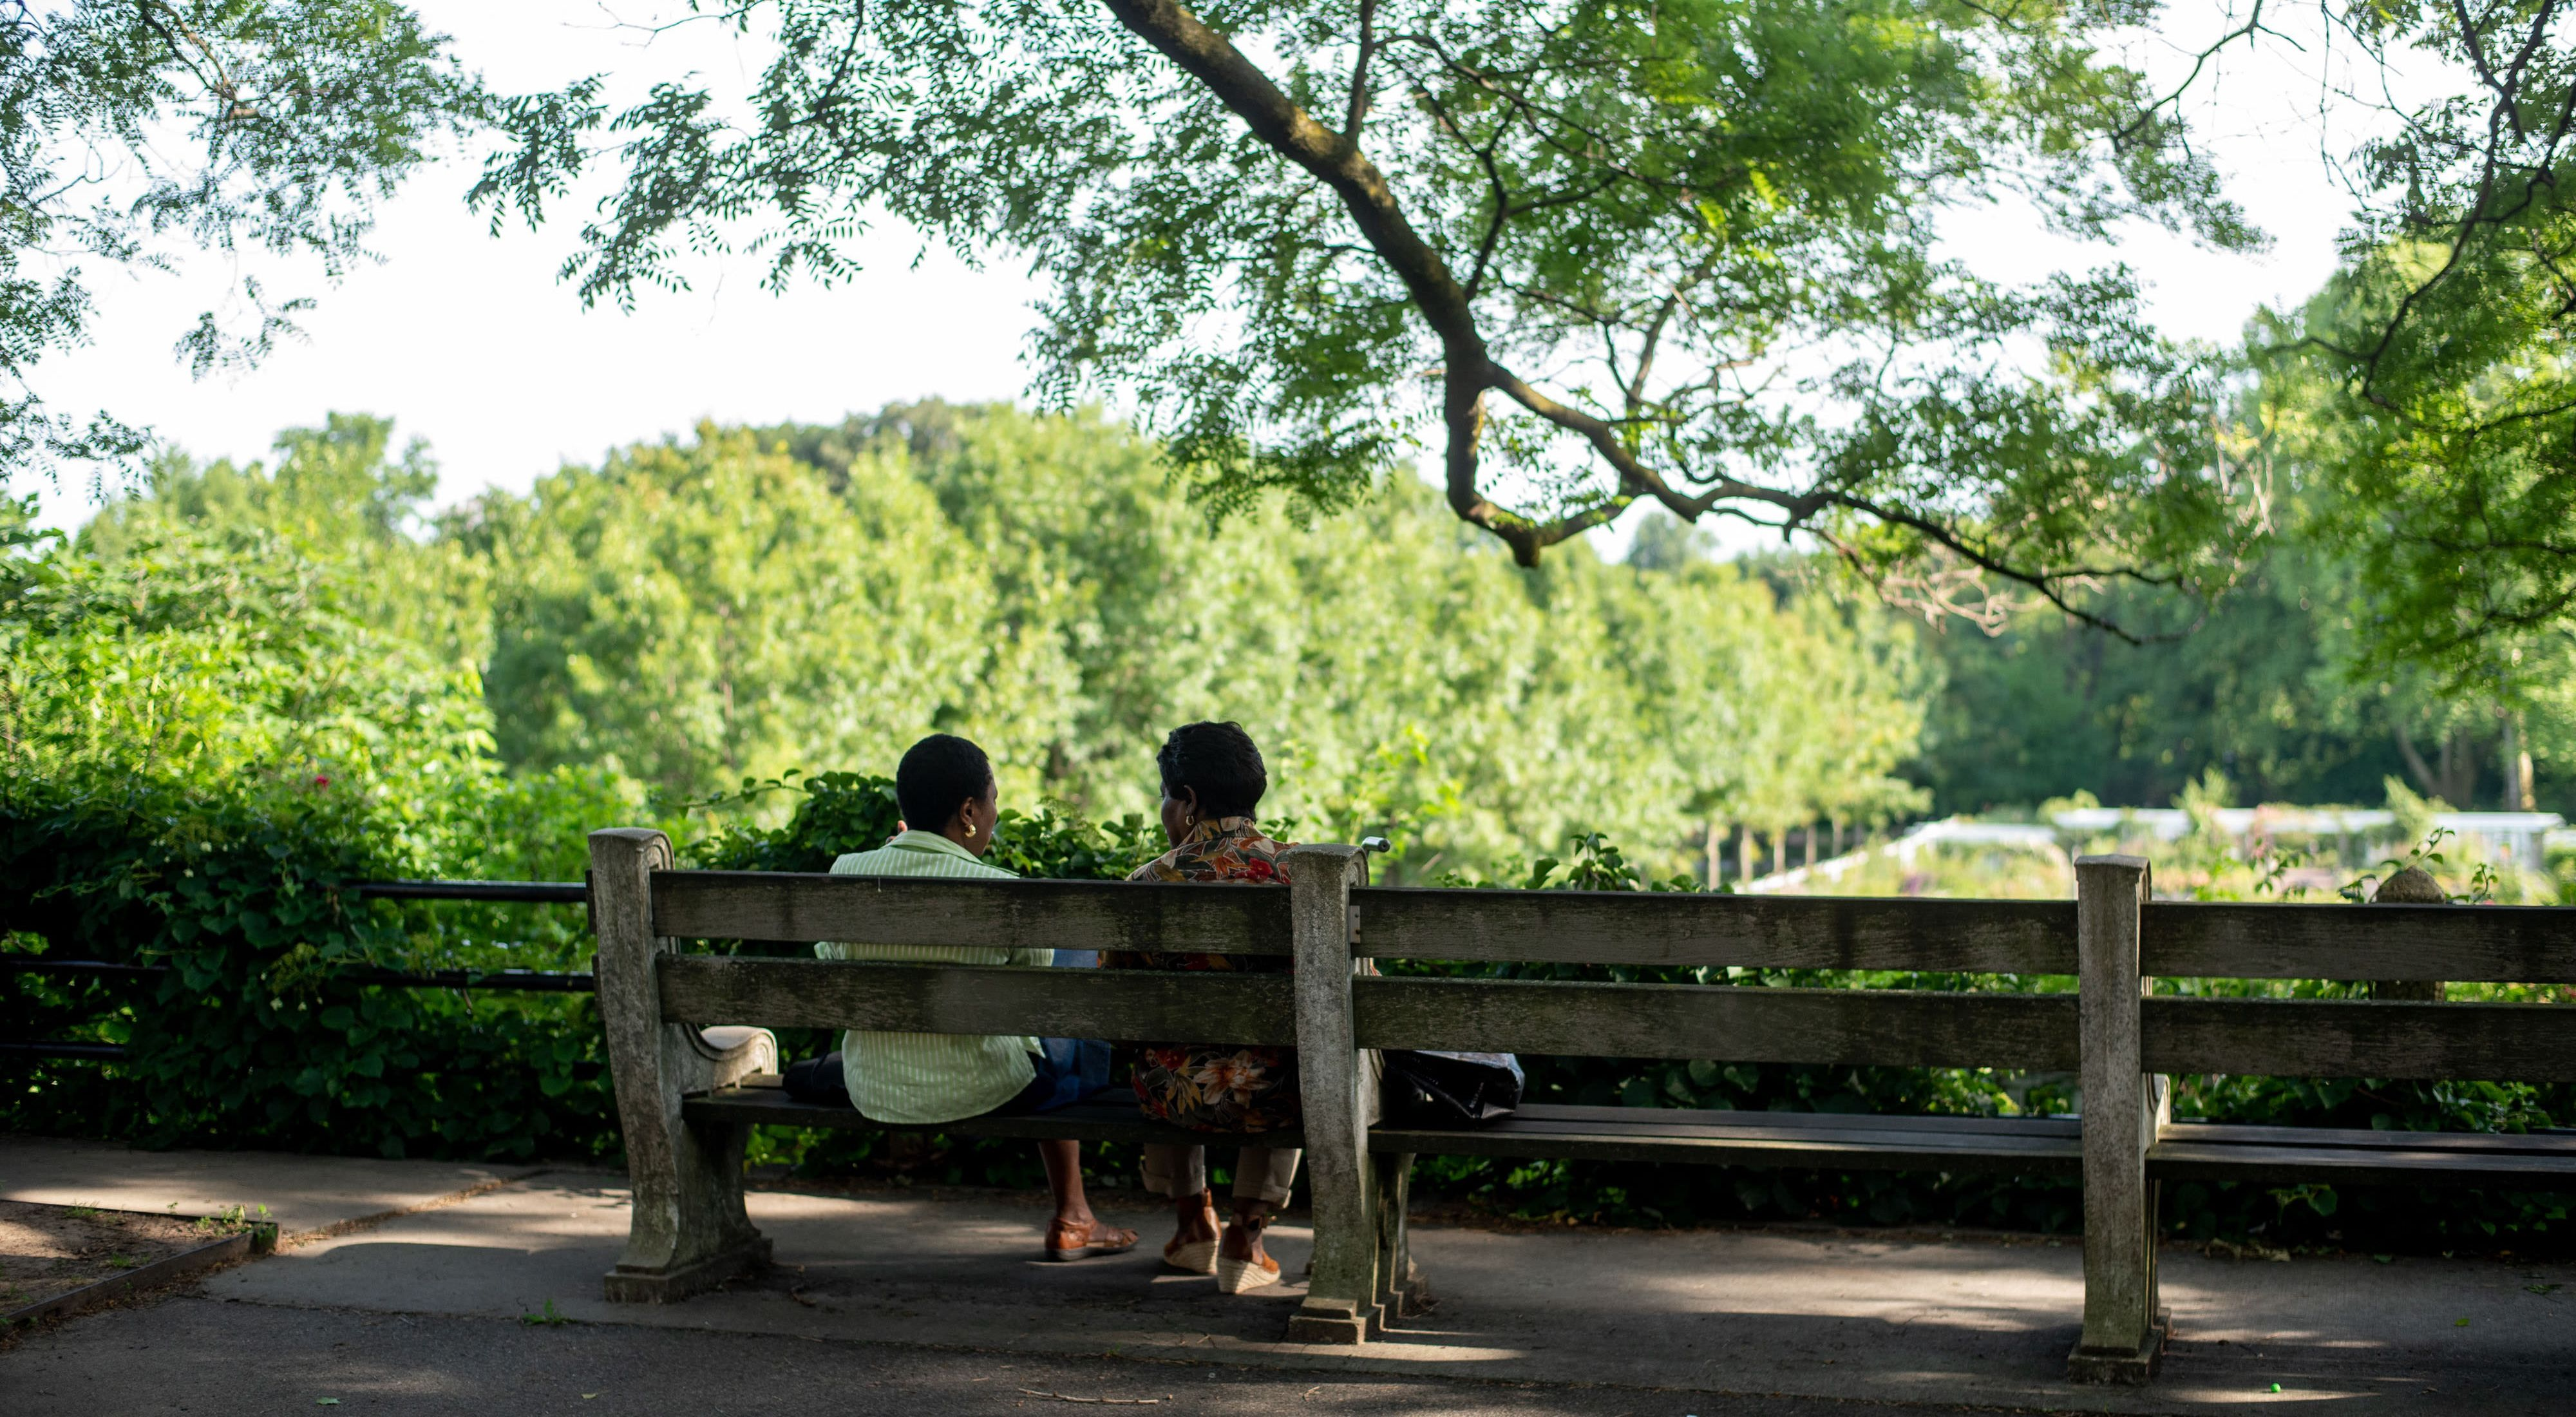 Two people sit on a bench overlooking the Brooklyn Botanical Garden.